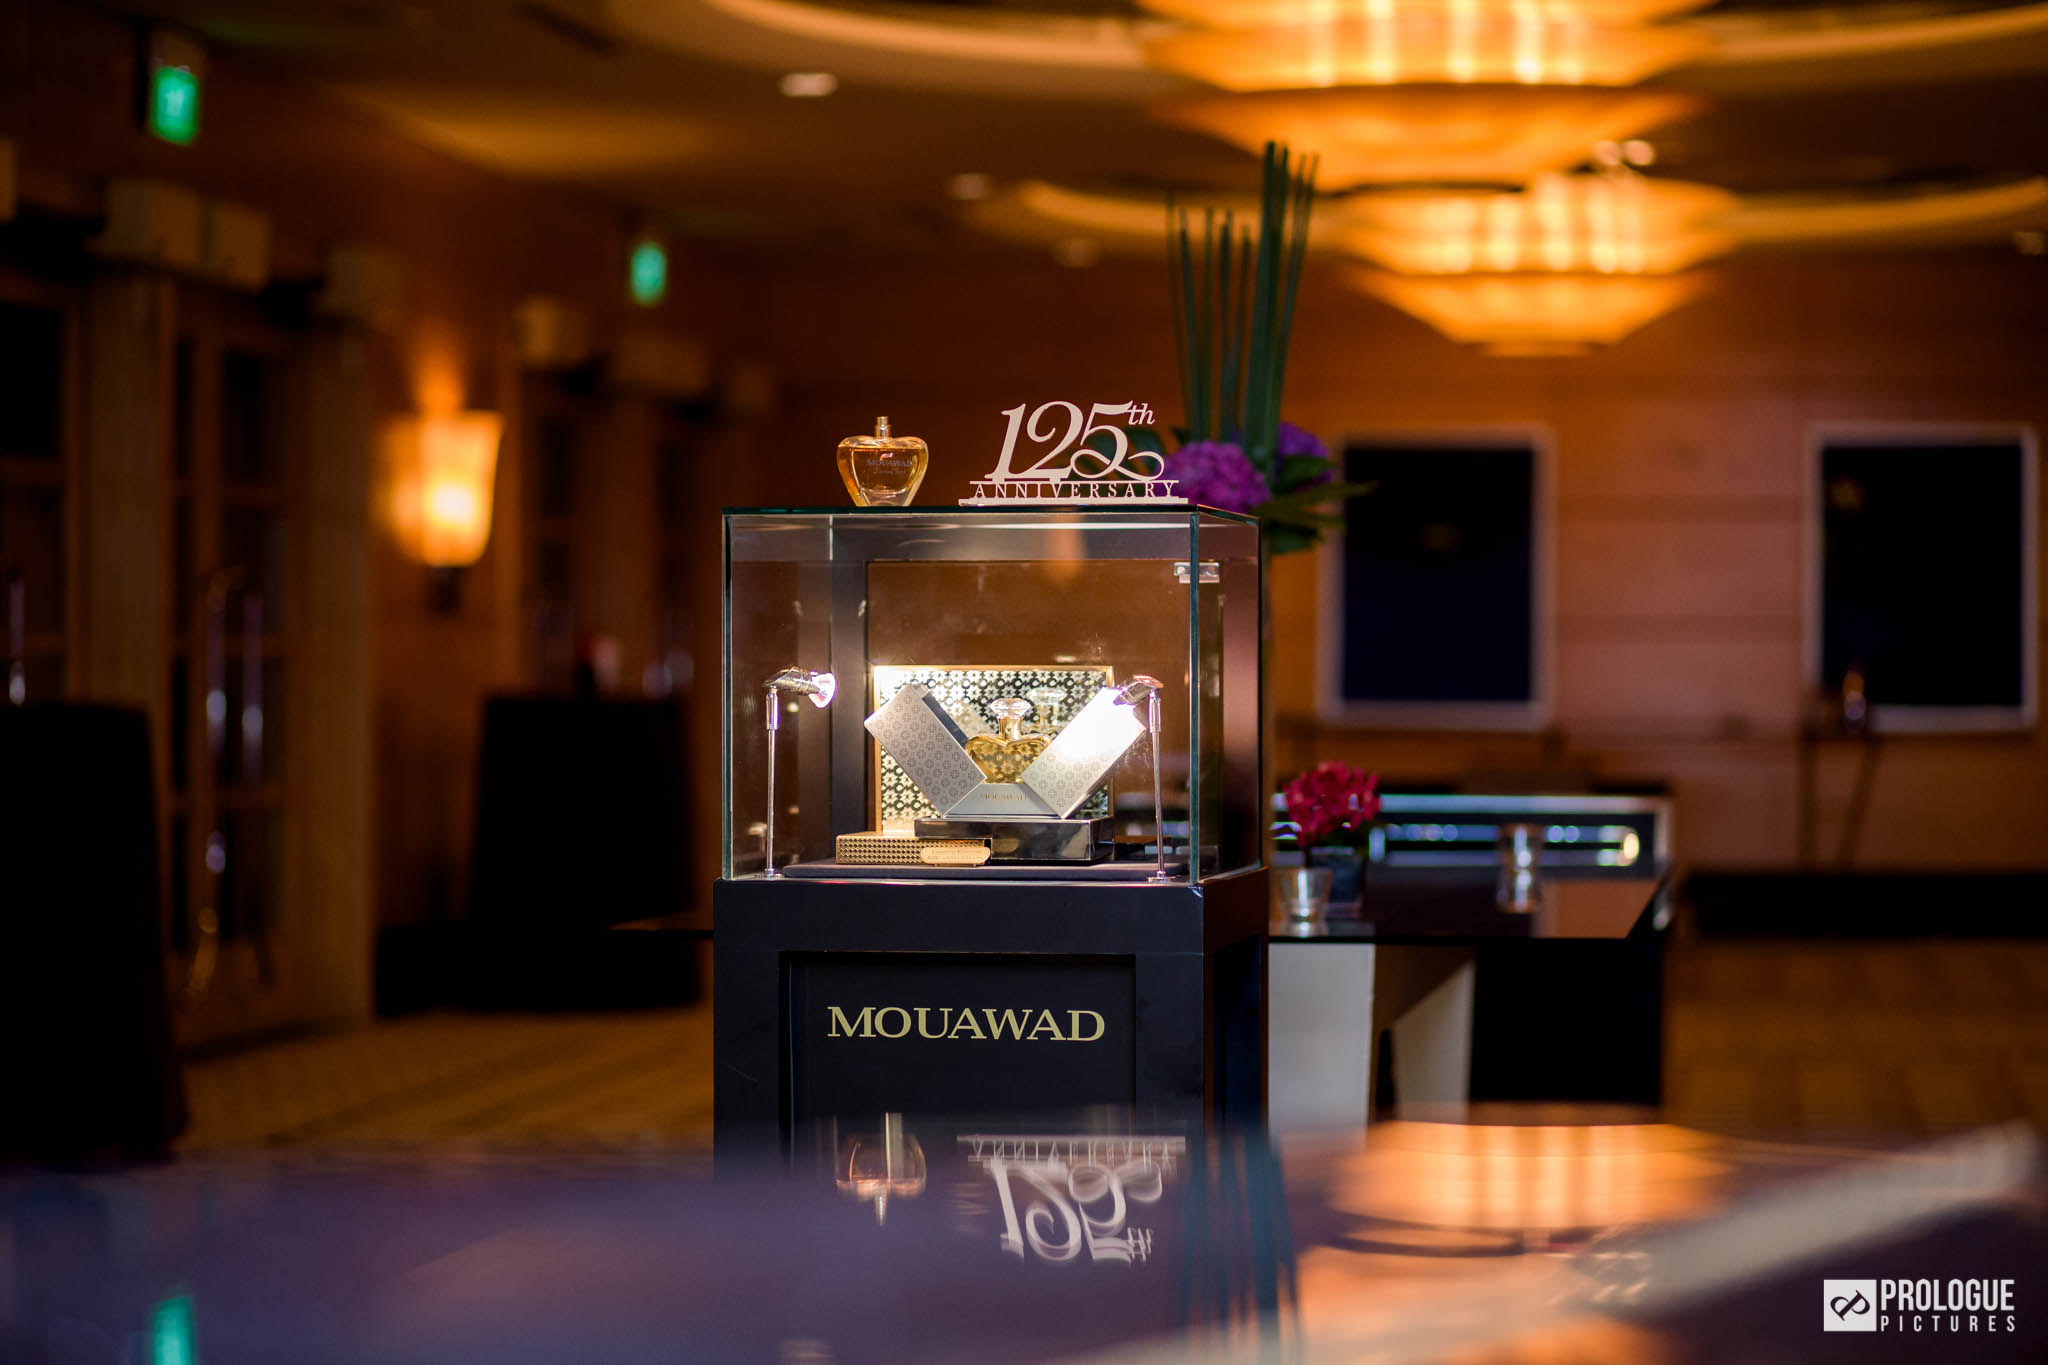 mouawad-125th-anniversary-event-photography-singapore-prologue-pictures-03